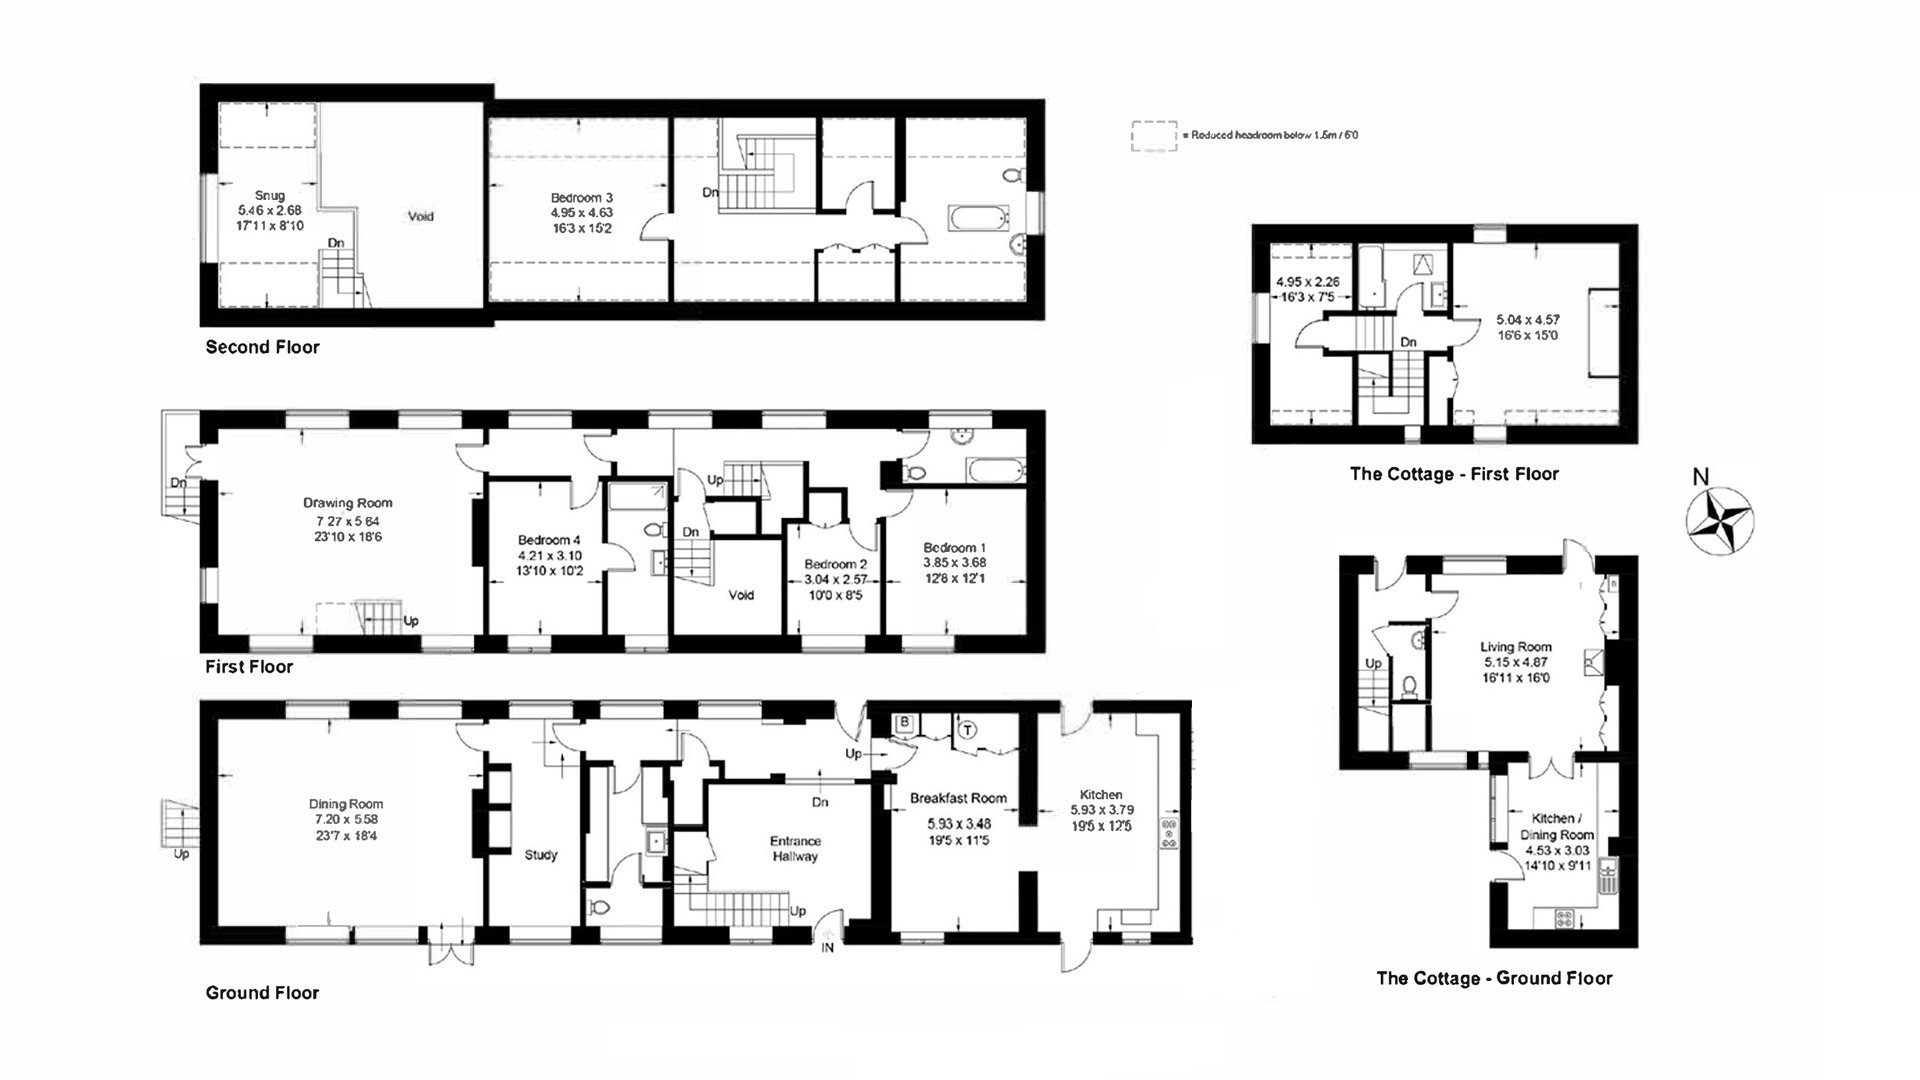 View the floorplan of Kellaways Mill